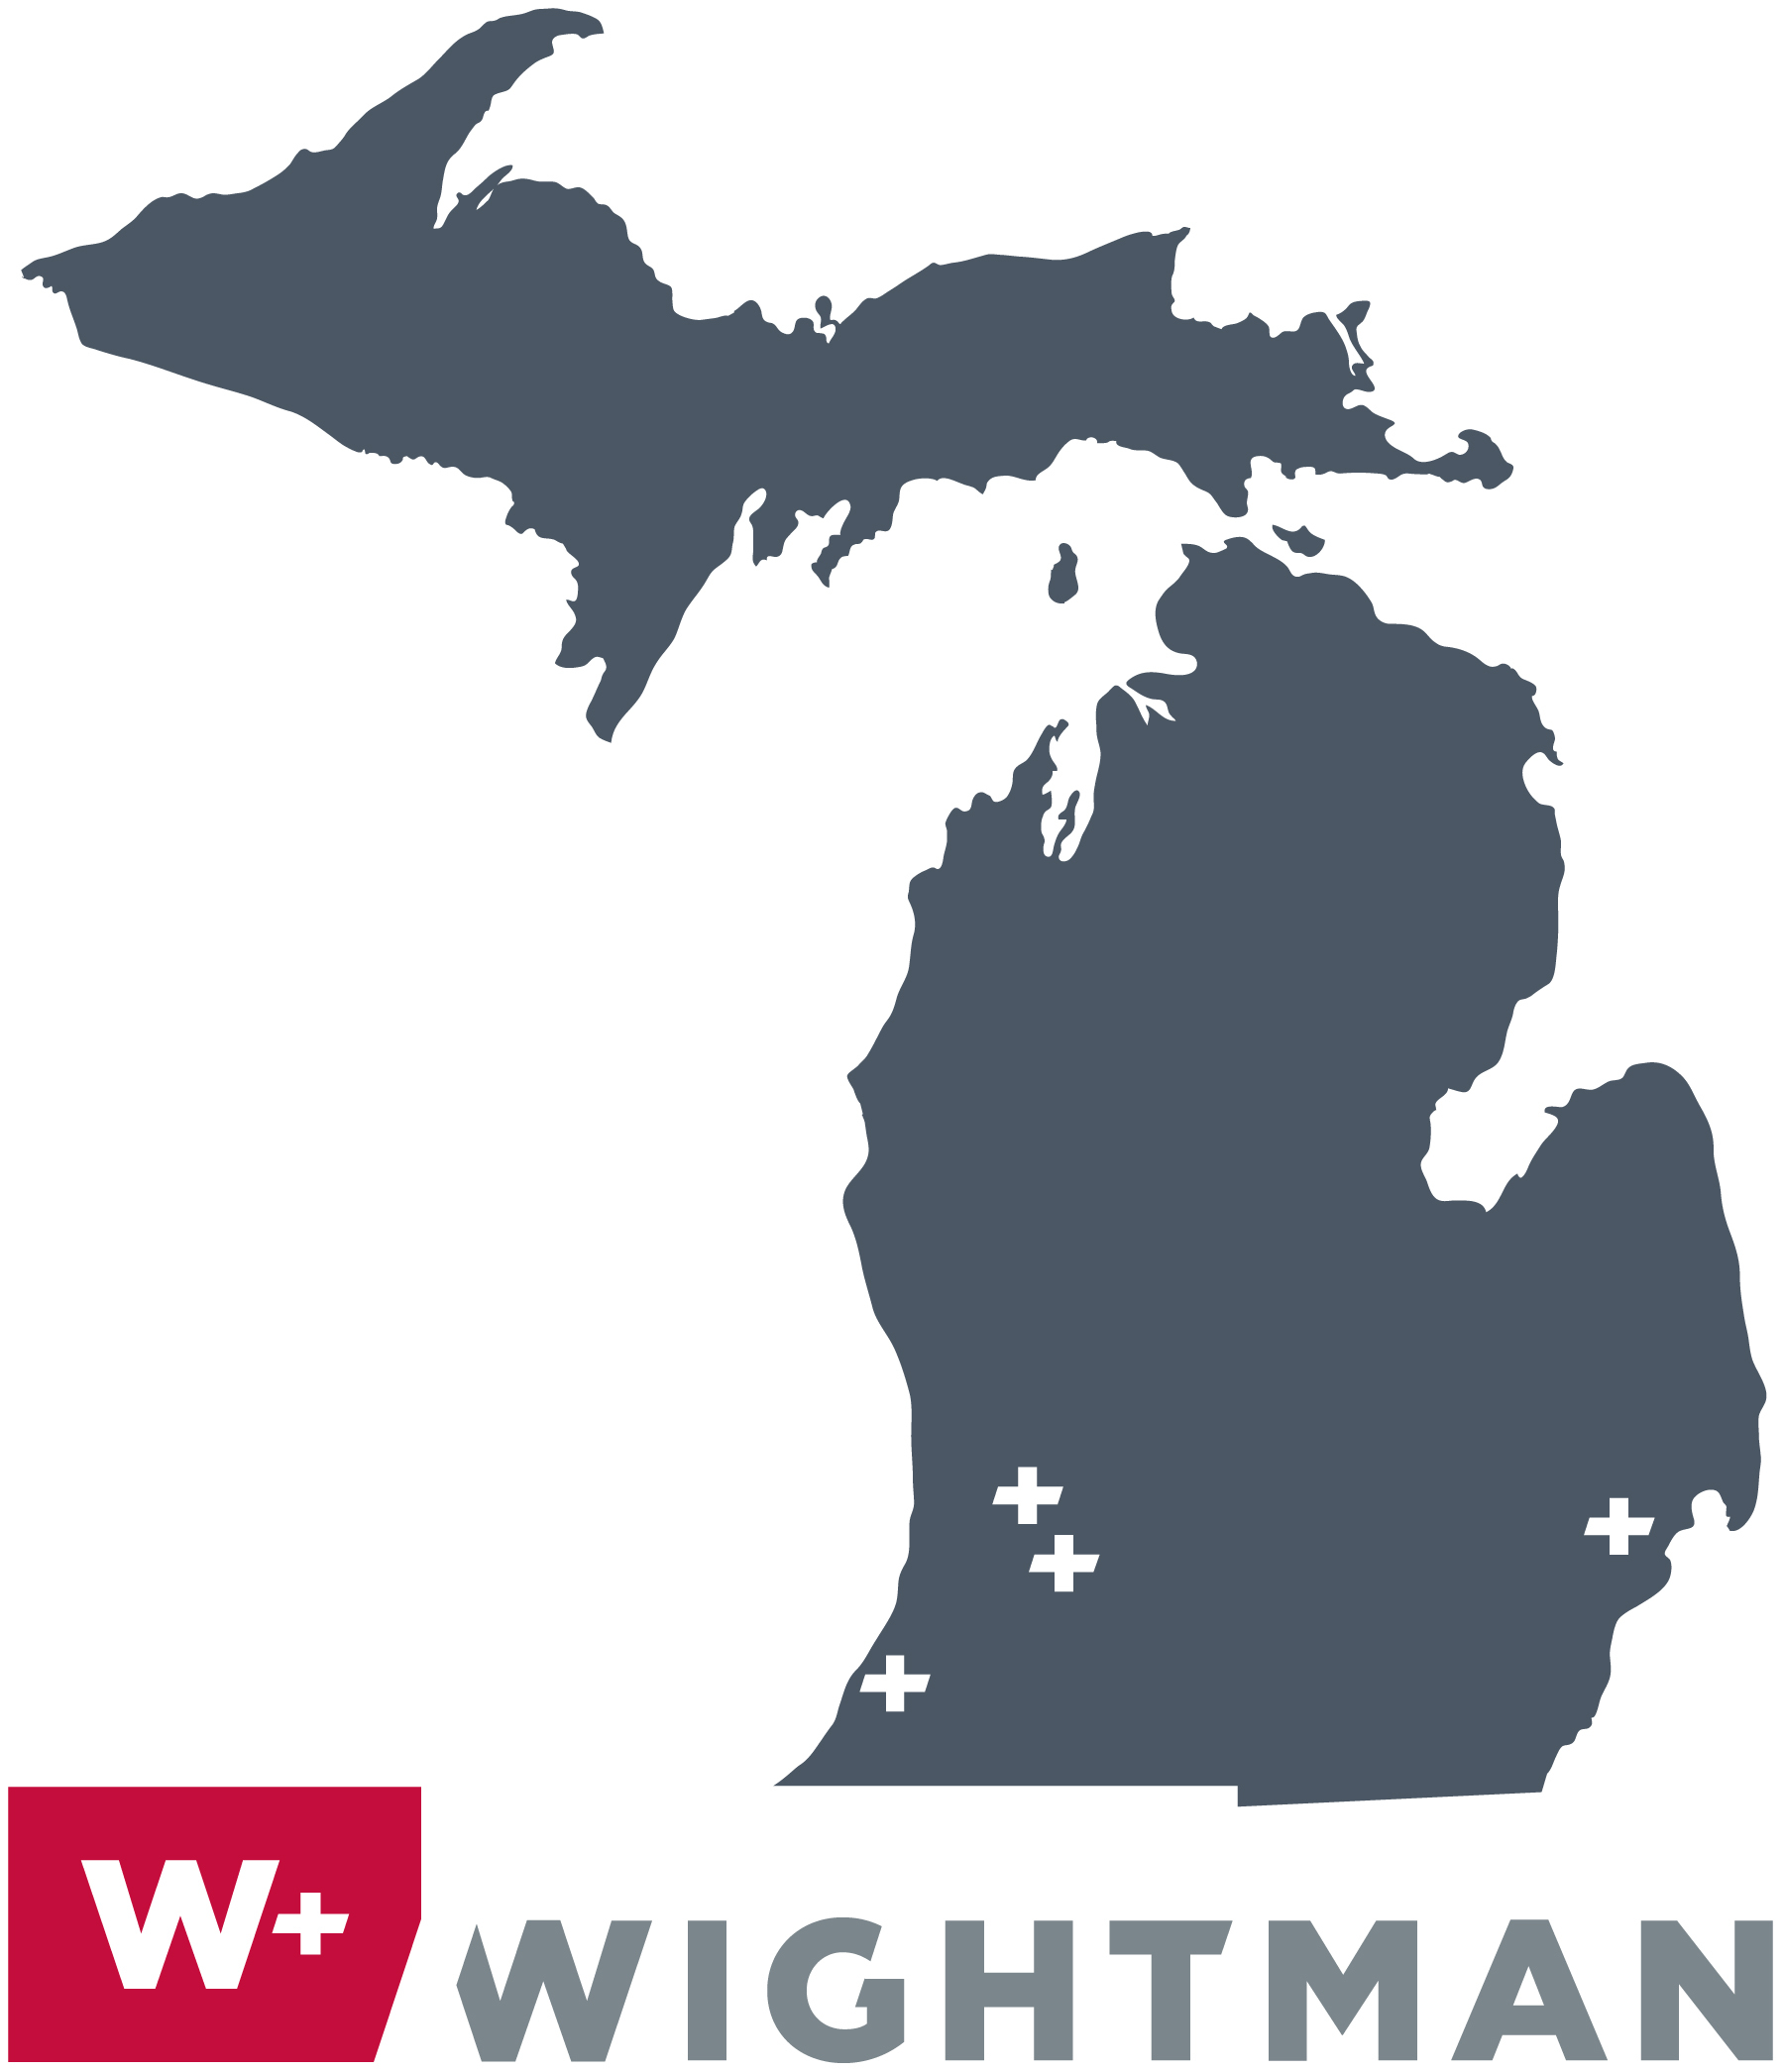 Wightman locations: Benton Harbor, Allegan, Kalamazoo